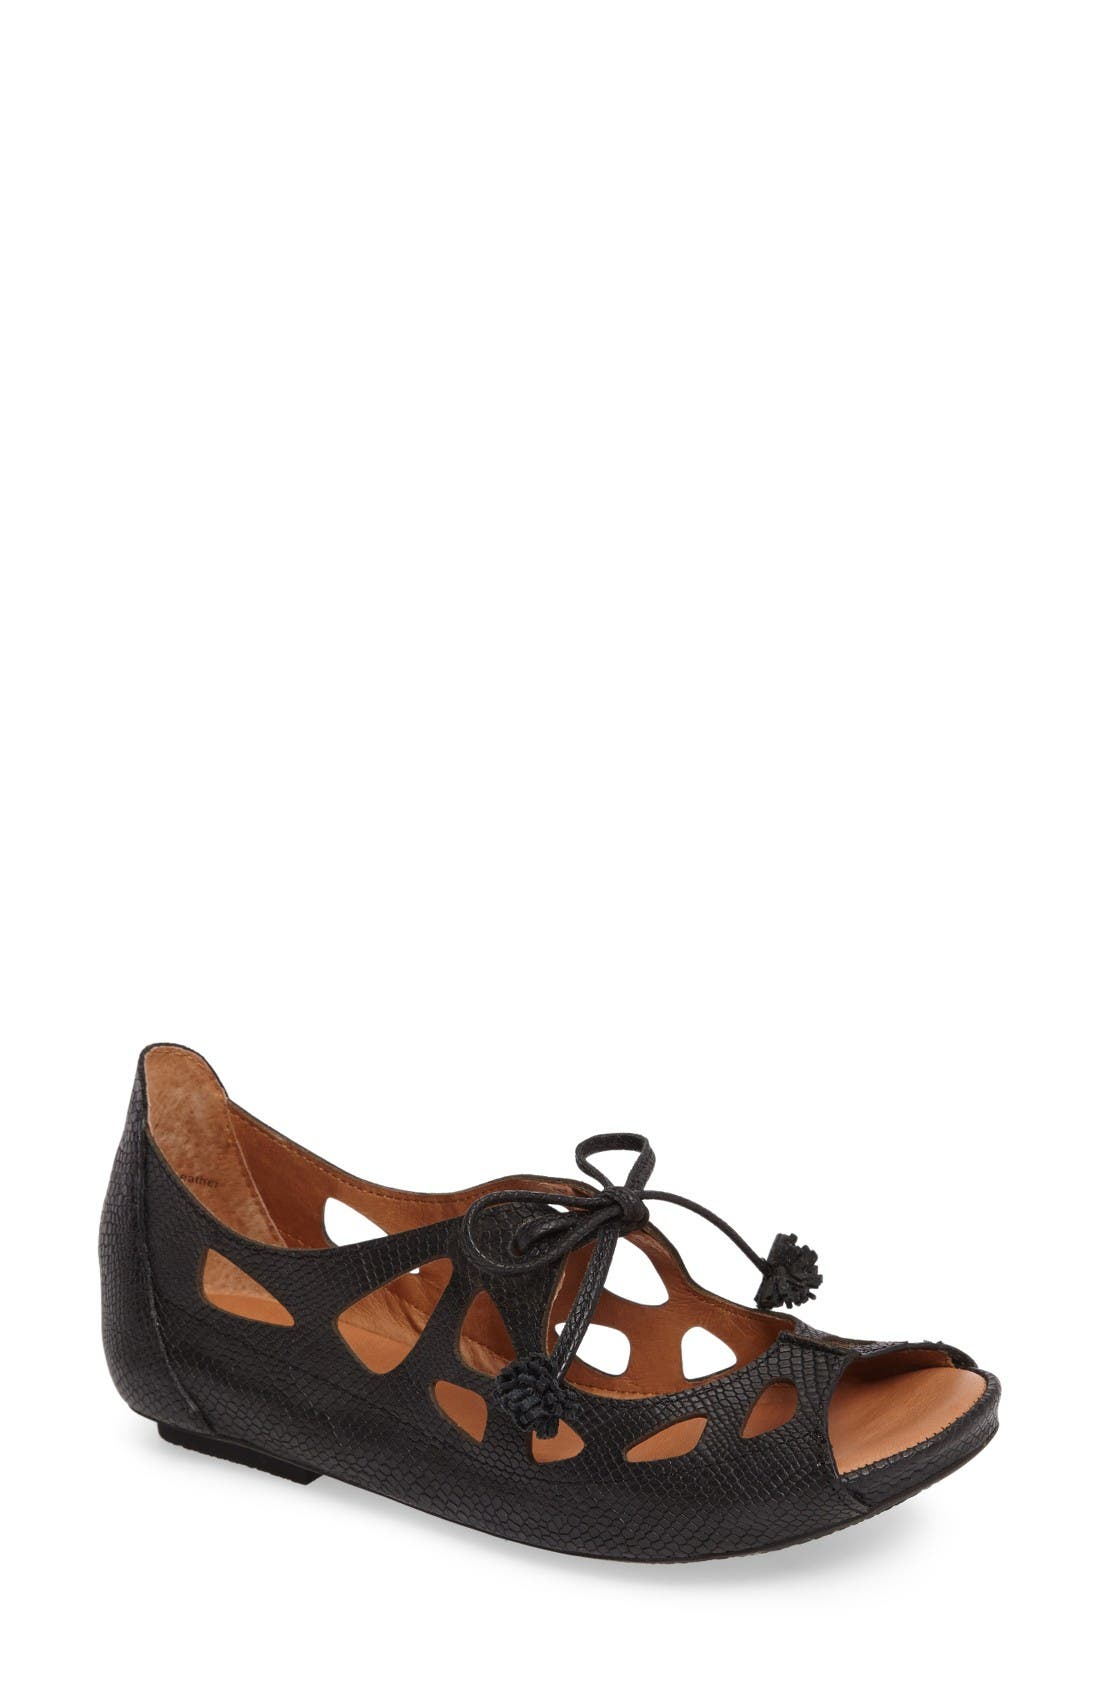 Alternate Image 1 Selected - Gentle Souls Brynn Cutout Sandal (Women)